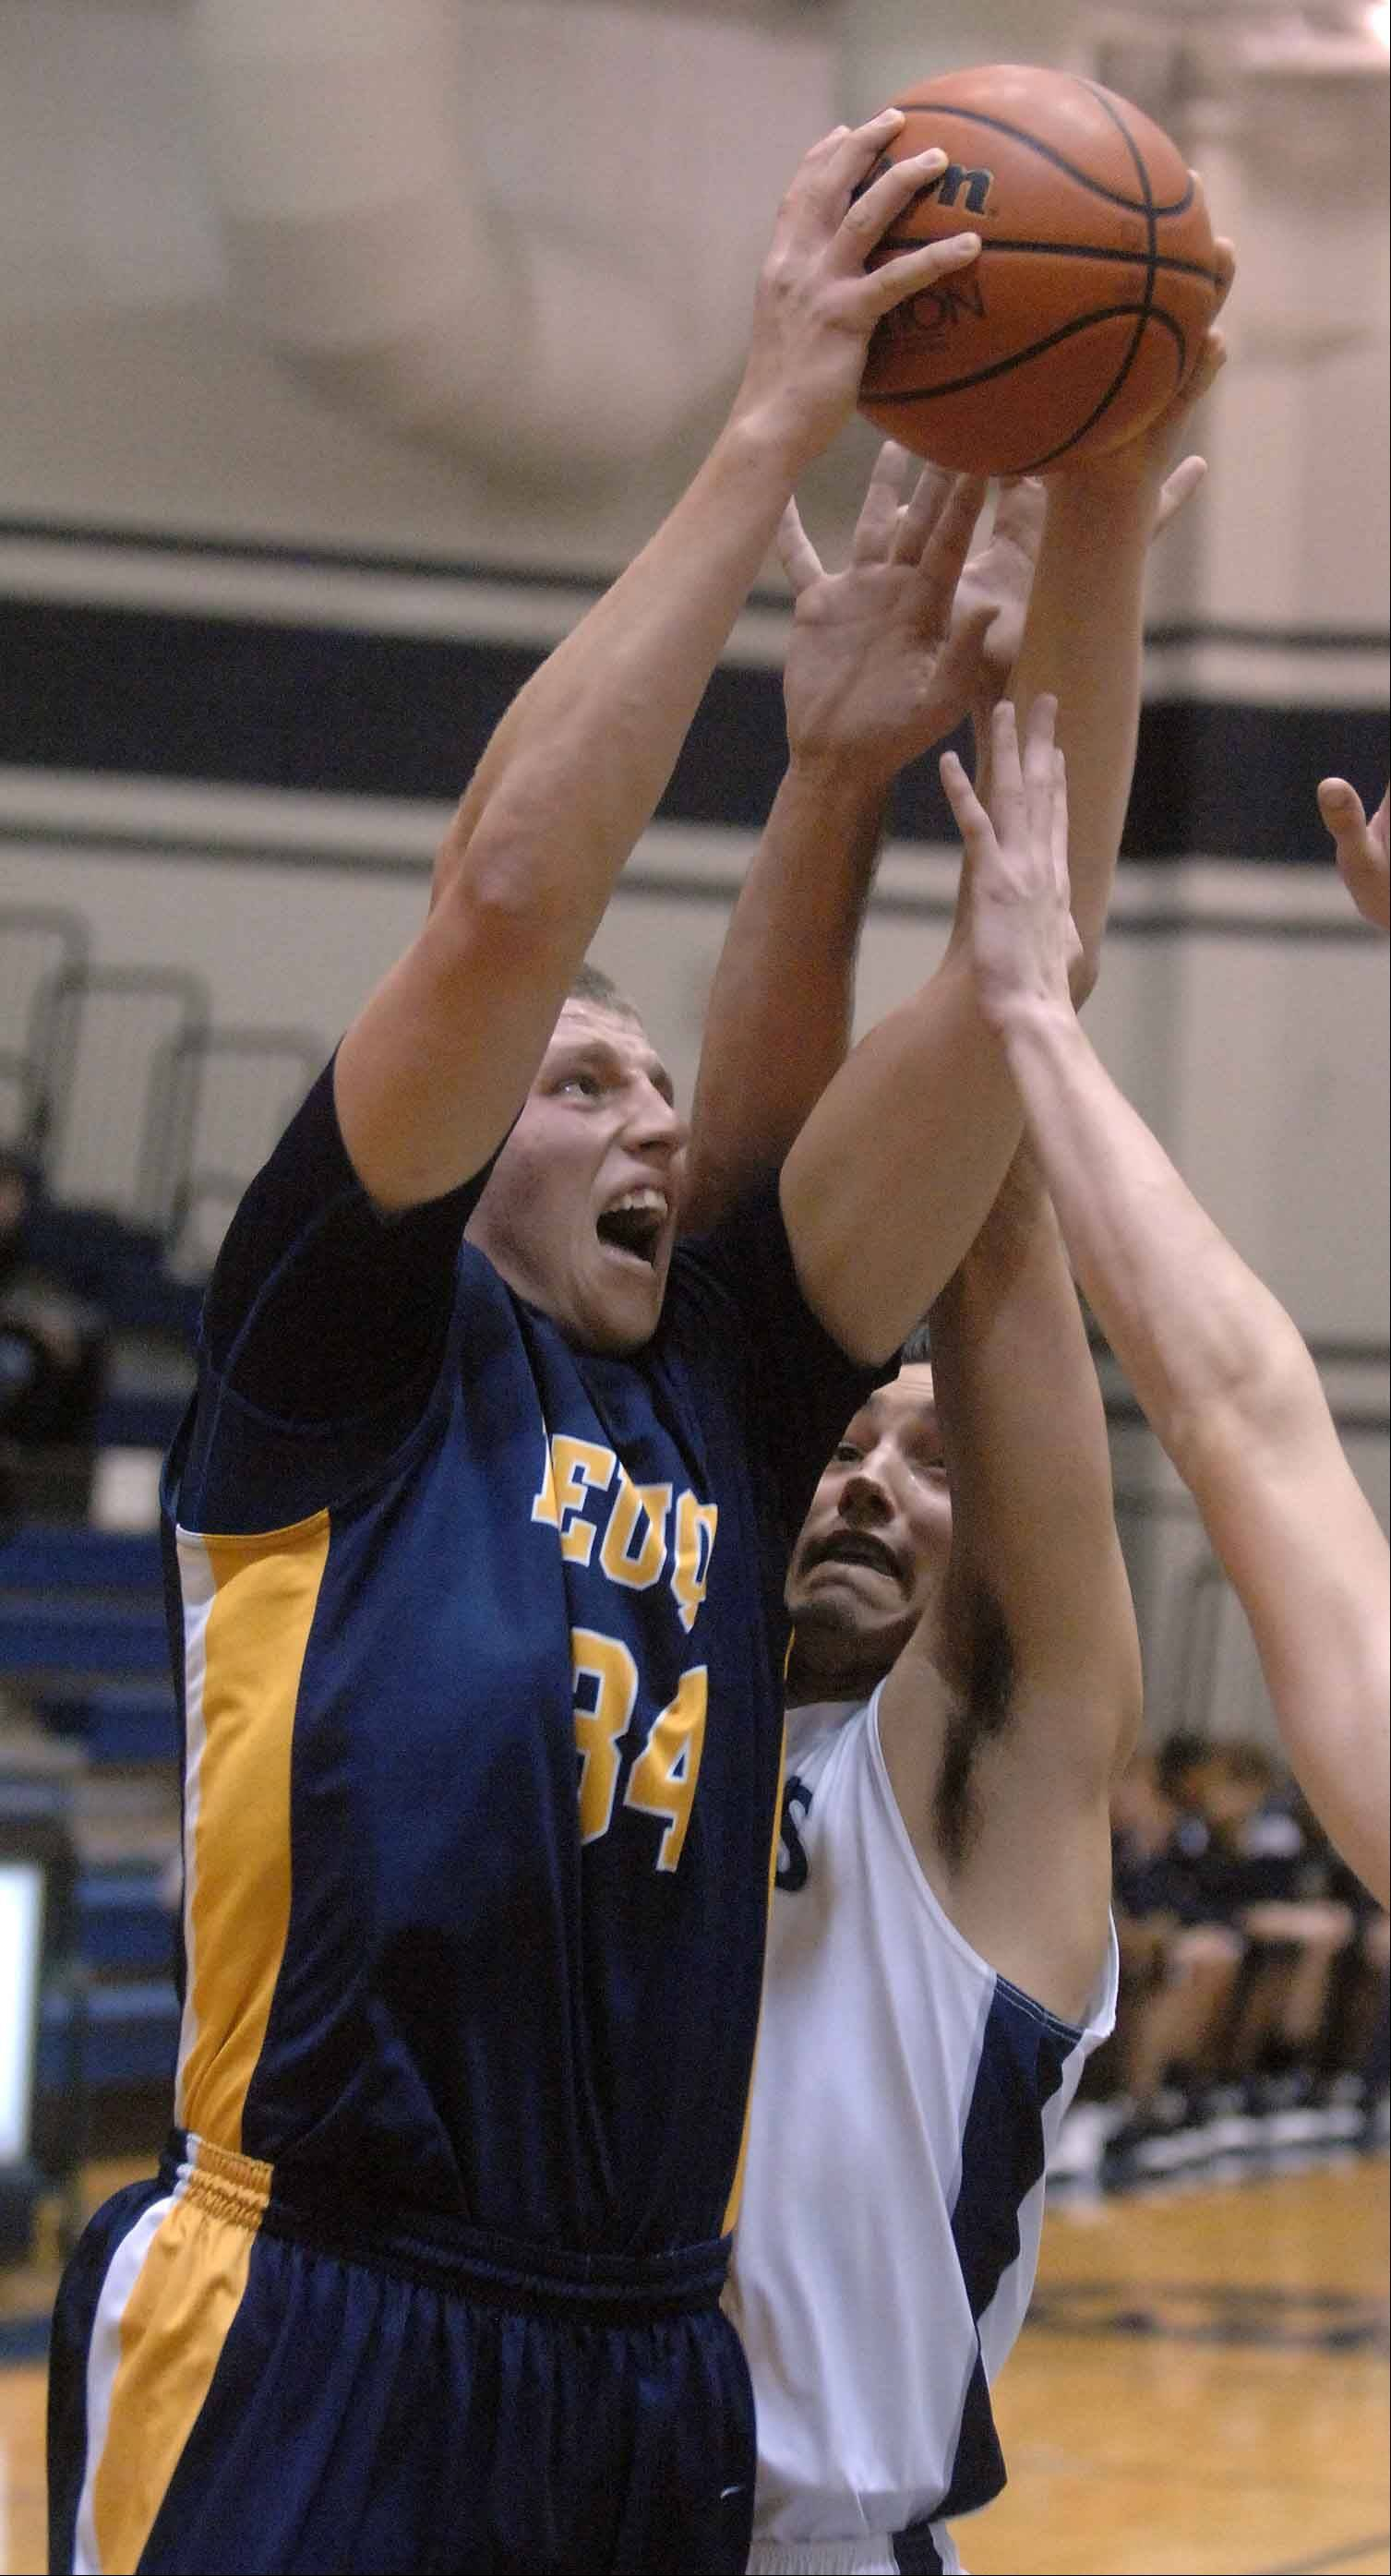 Pat Kenny of Neuqua Valley goes up for a rebound during Friday's boys basketball game against Lake Park in Roselle.